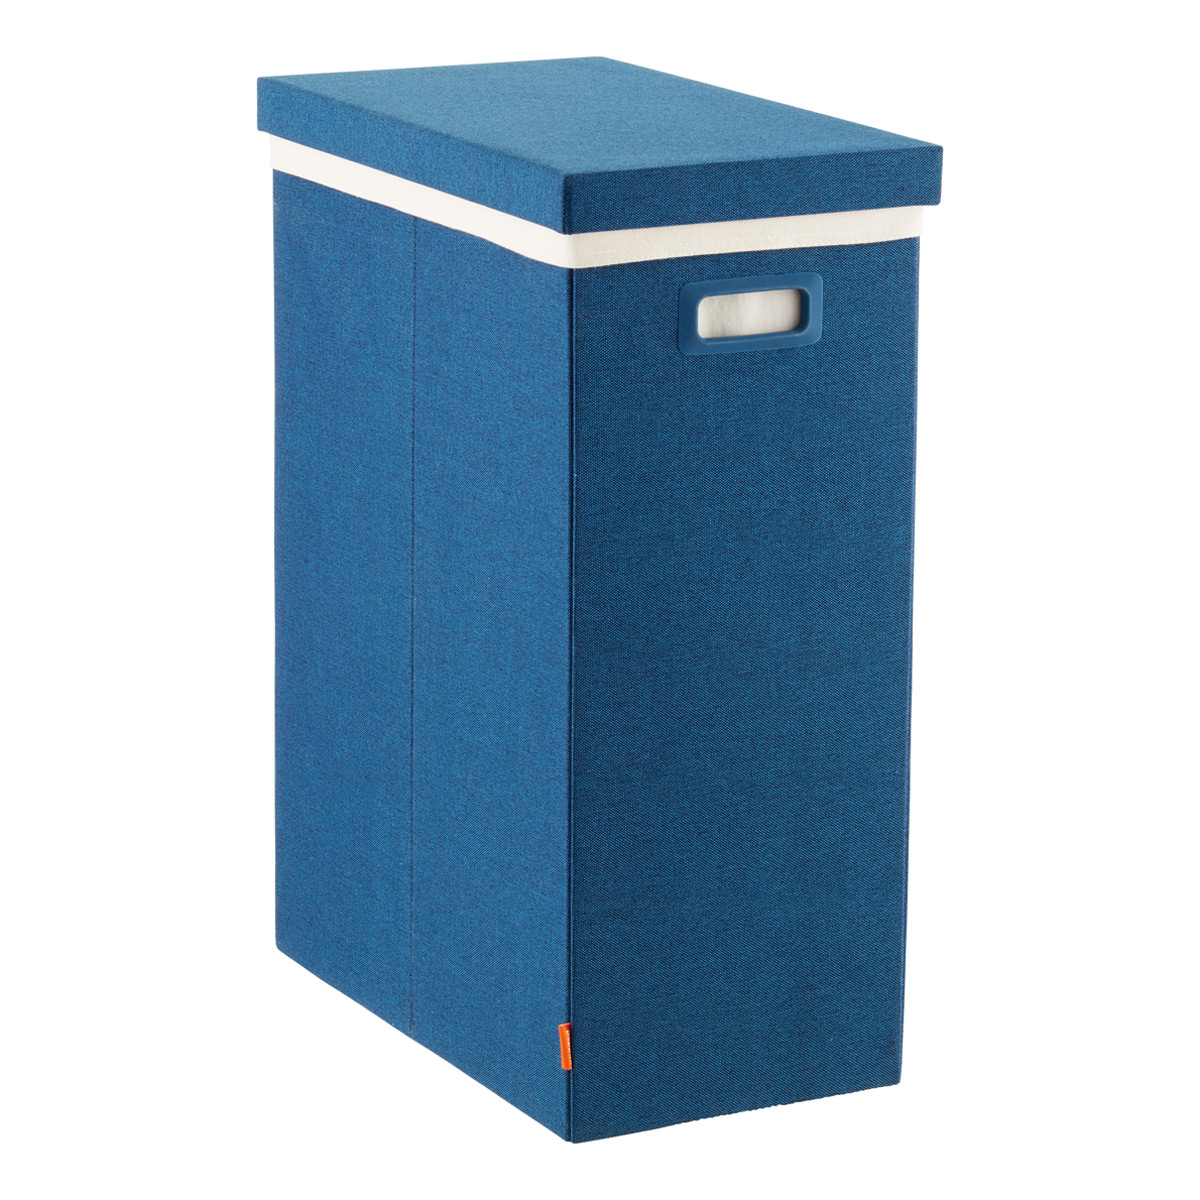 laundry hampers navy poppin laundry hamper with lid nyhzvmt